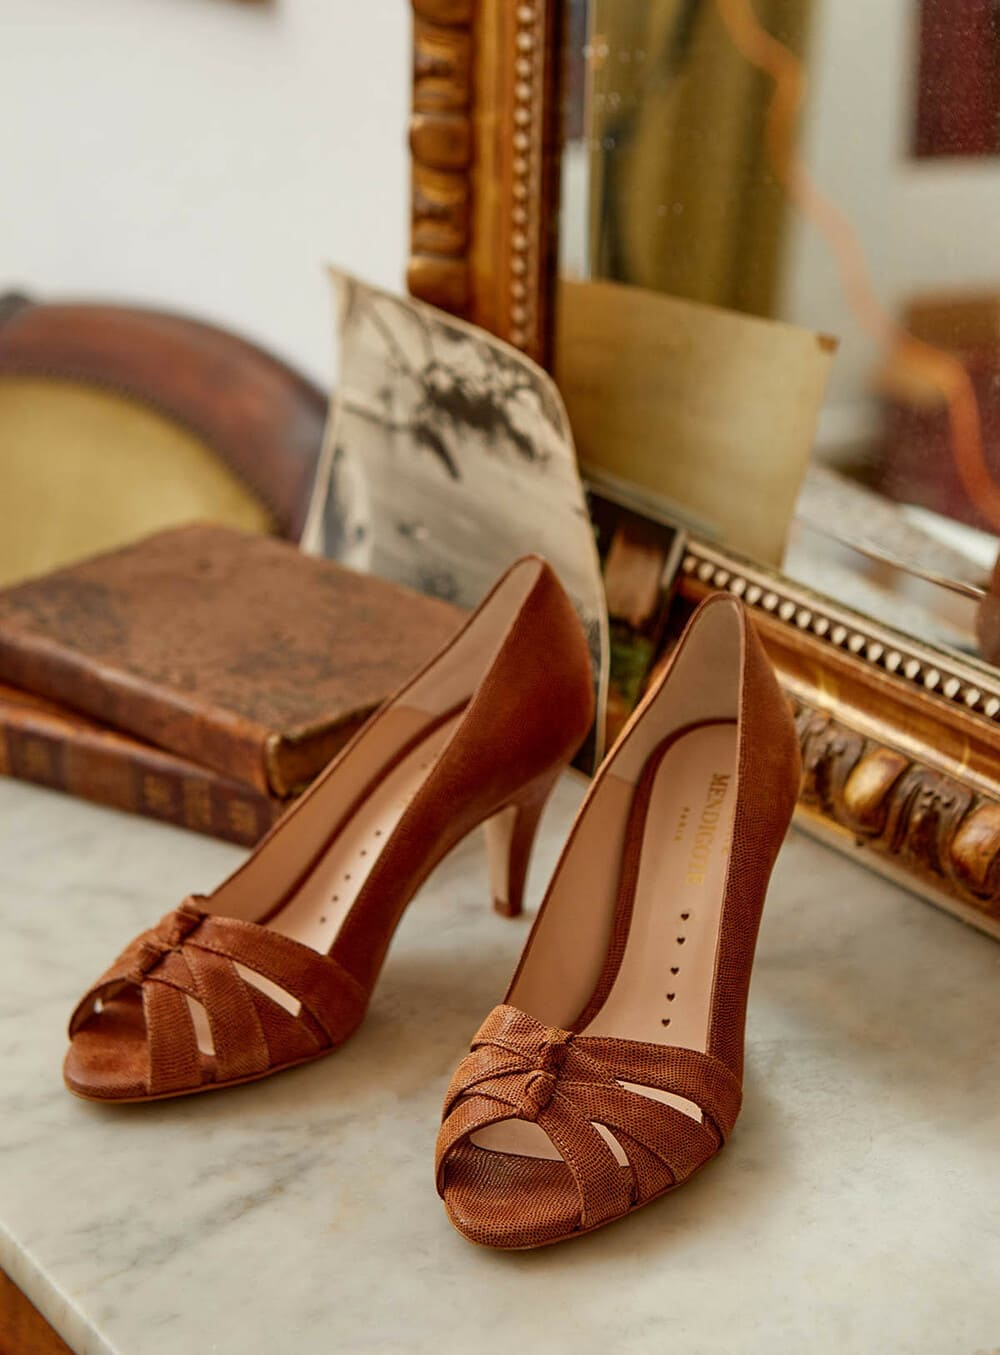 inspiration thème mariage terracotta pronupsims upcycling wedcycling chaussures escarpins